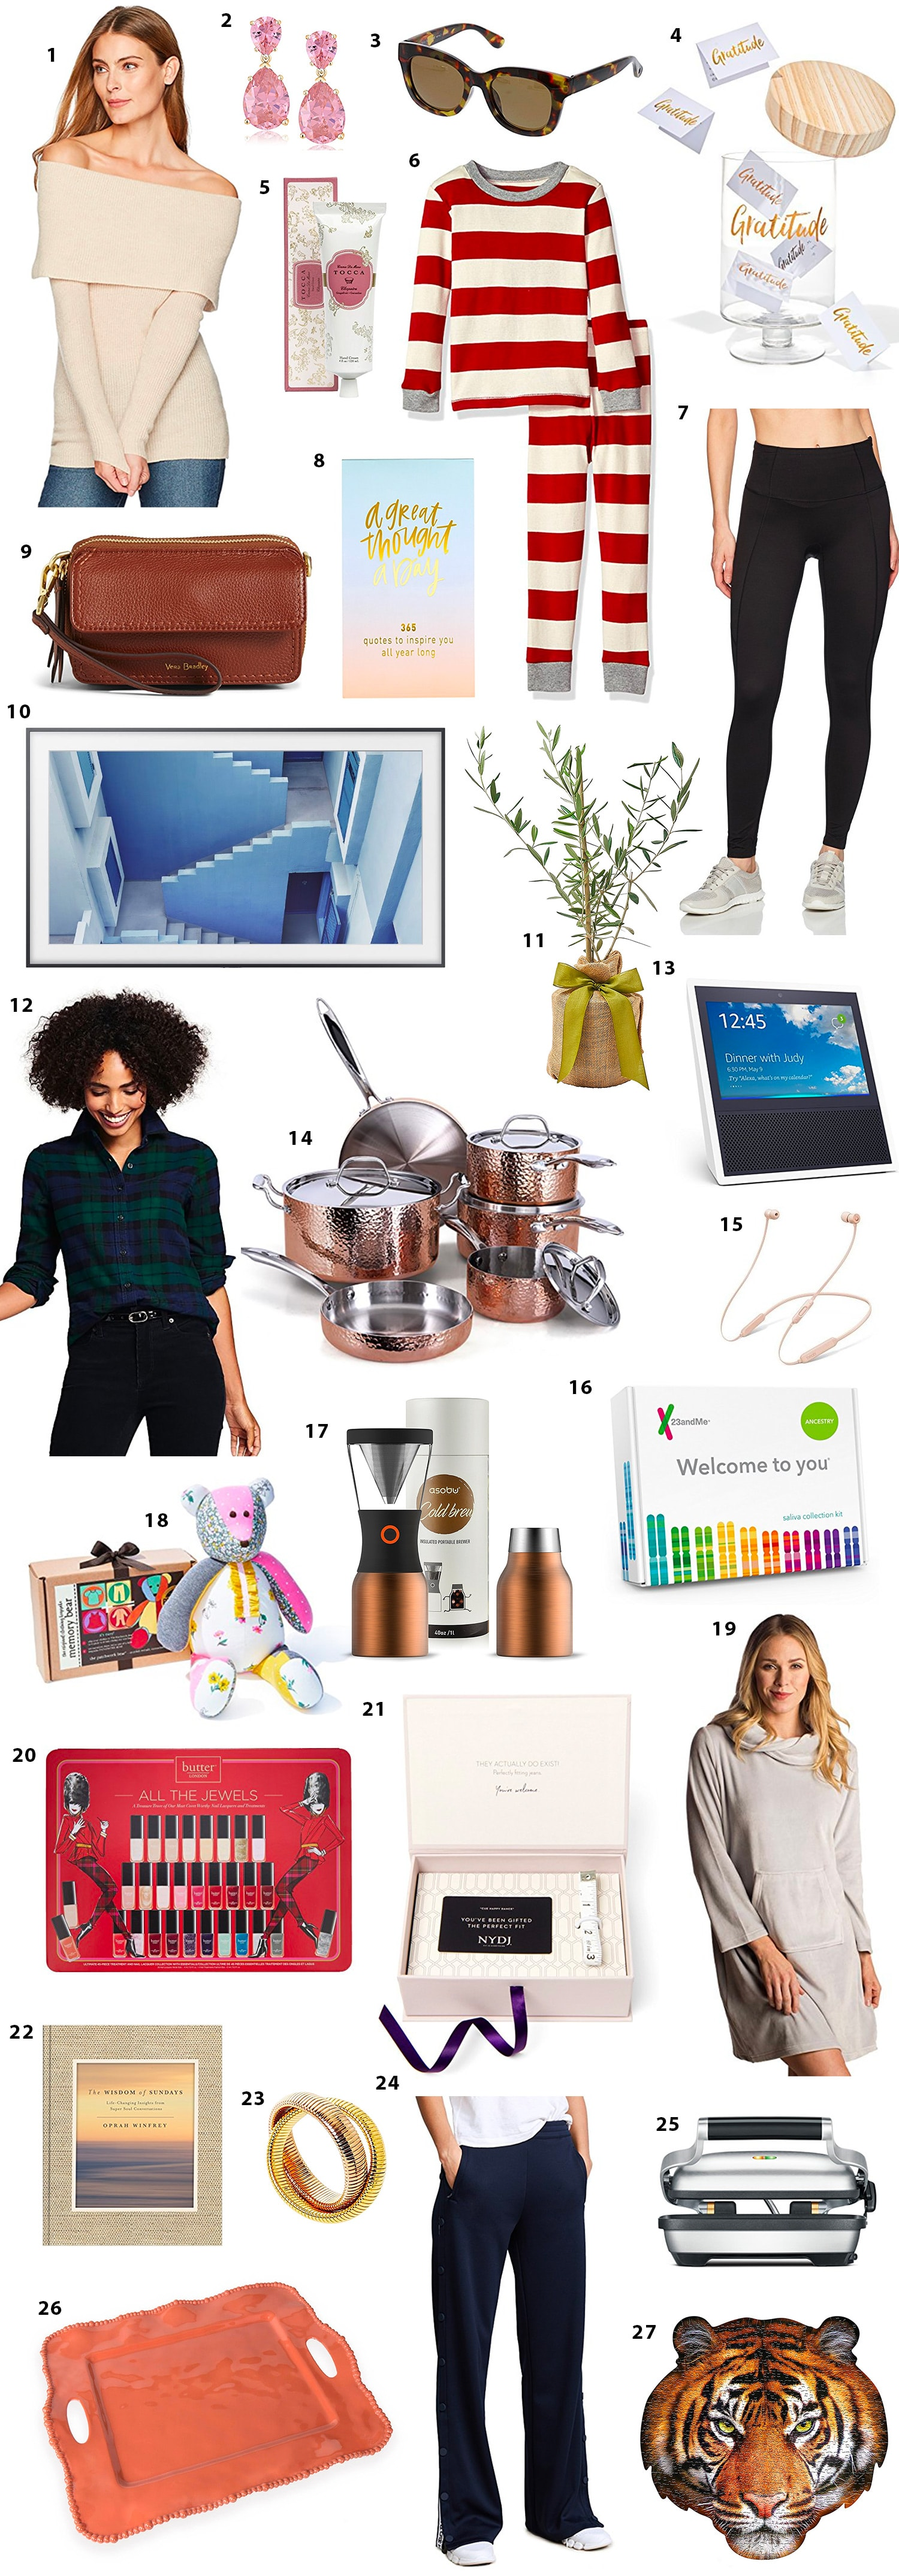 Oprah's favorite things episode shopping gift ideas for holidays